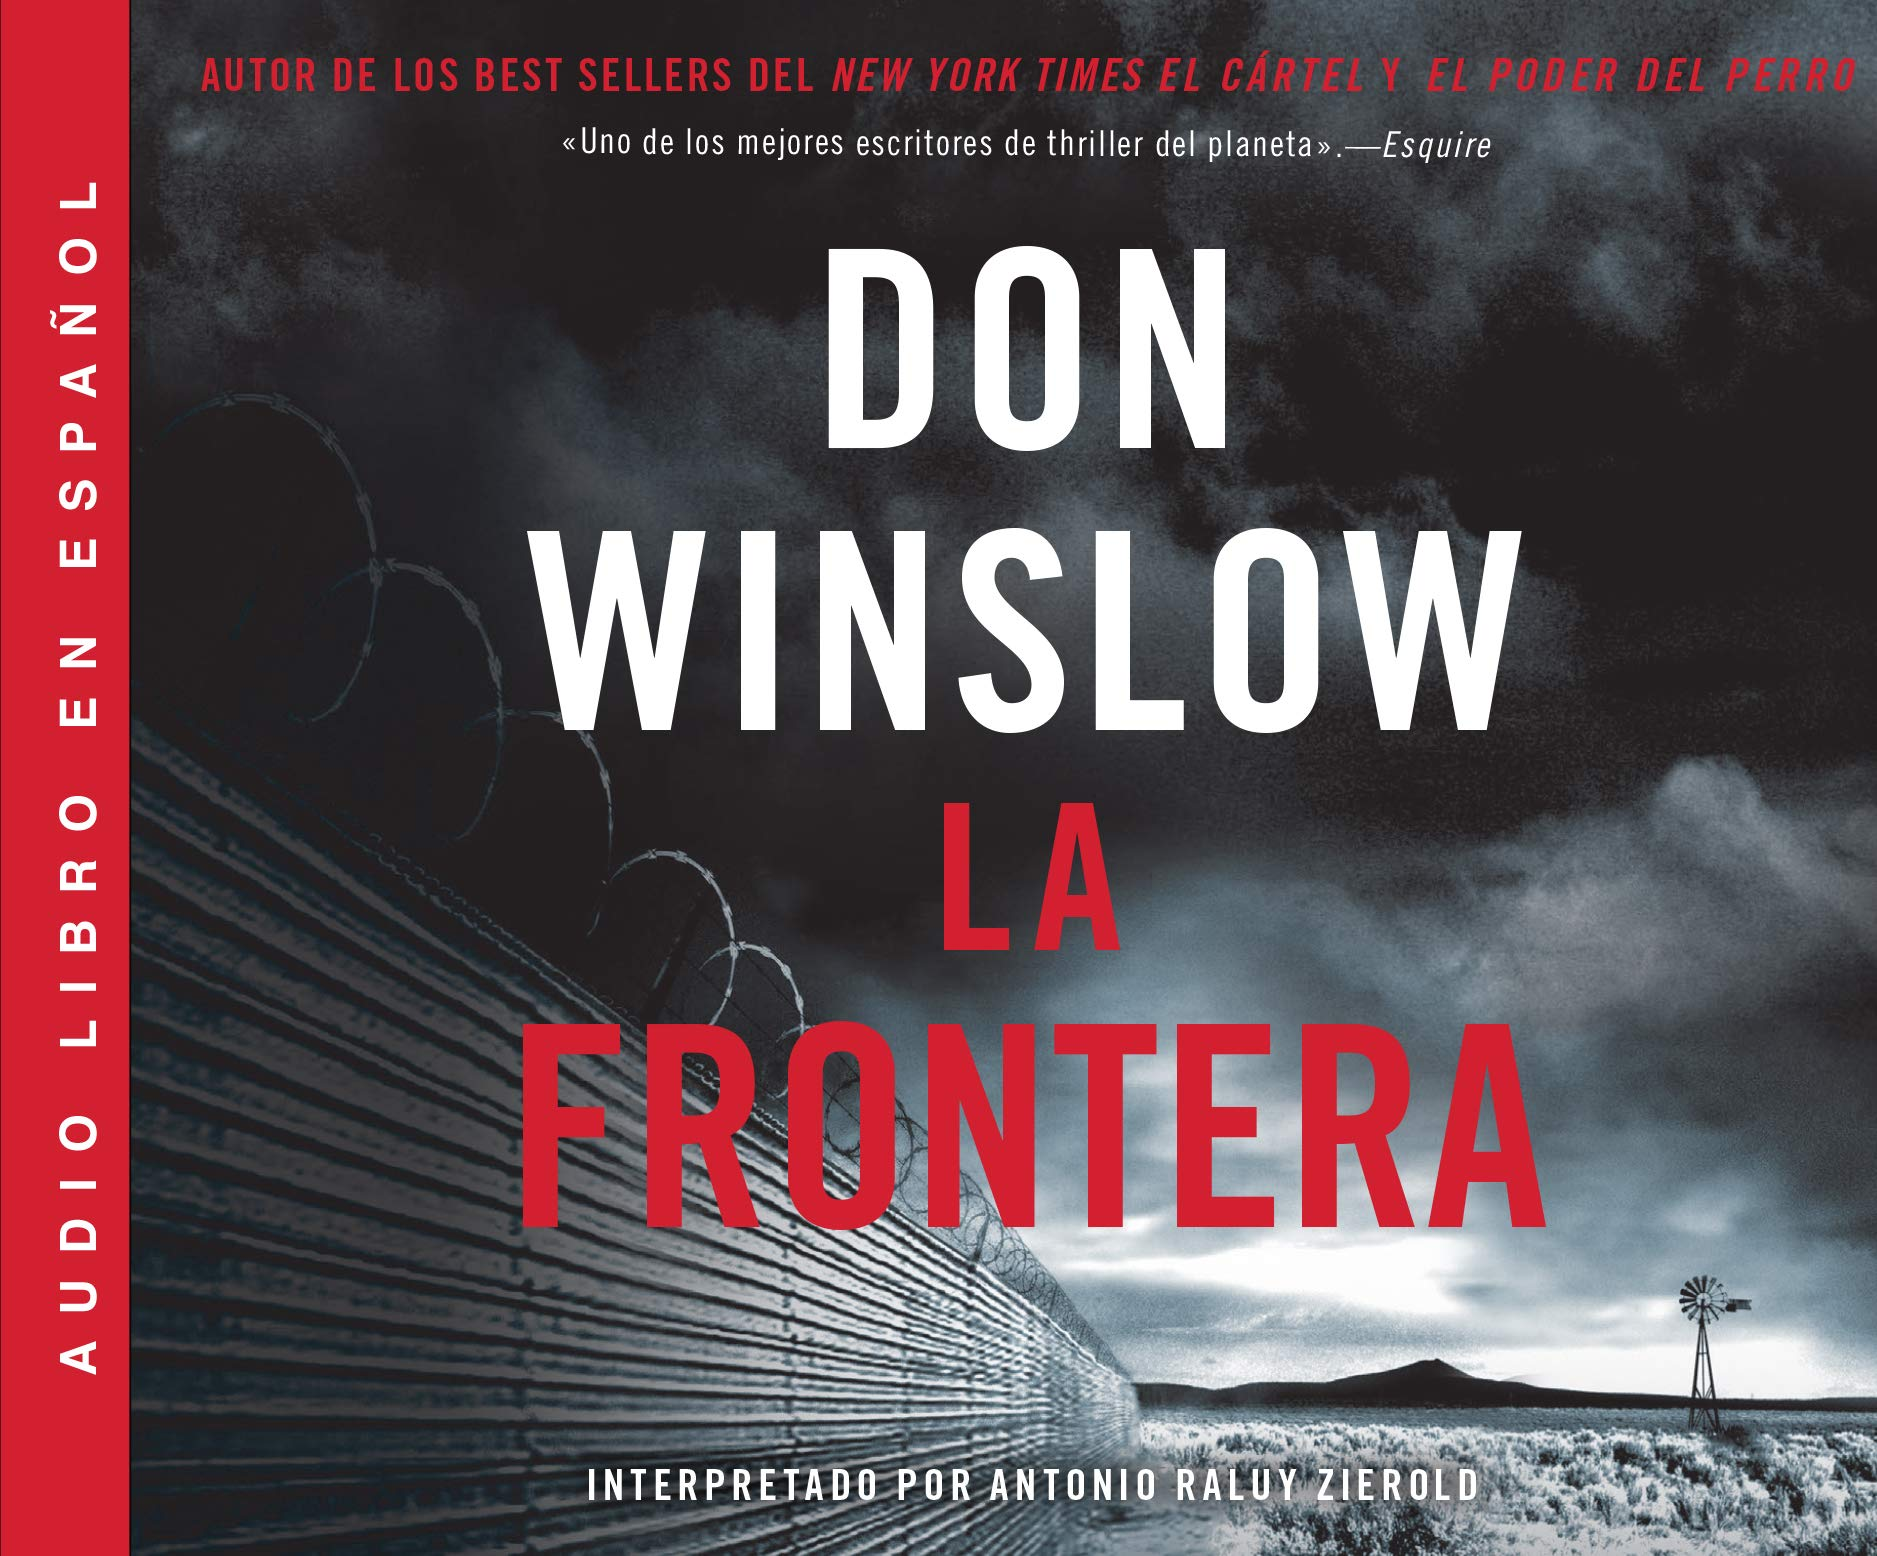 La Frontera (The Border): Una novela (A Novel) (Power of the Dog) Audio CD  – Audiobook, CD, Unabridged